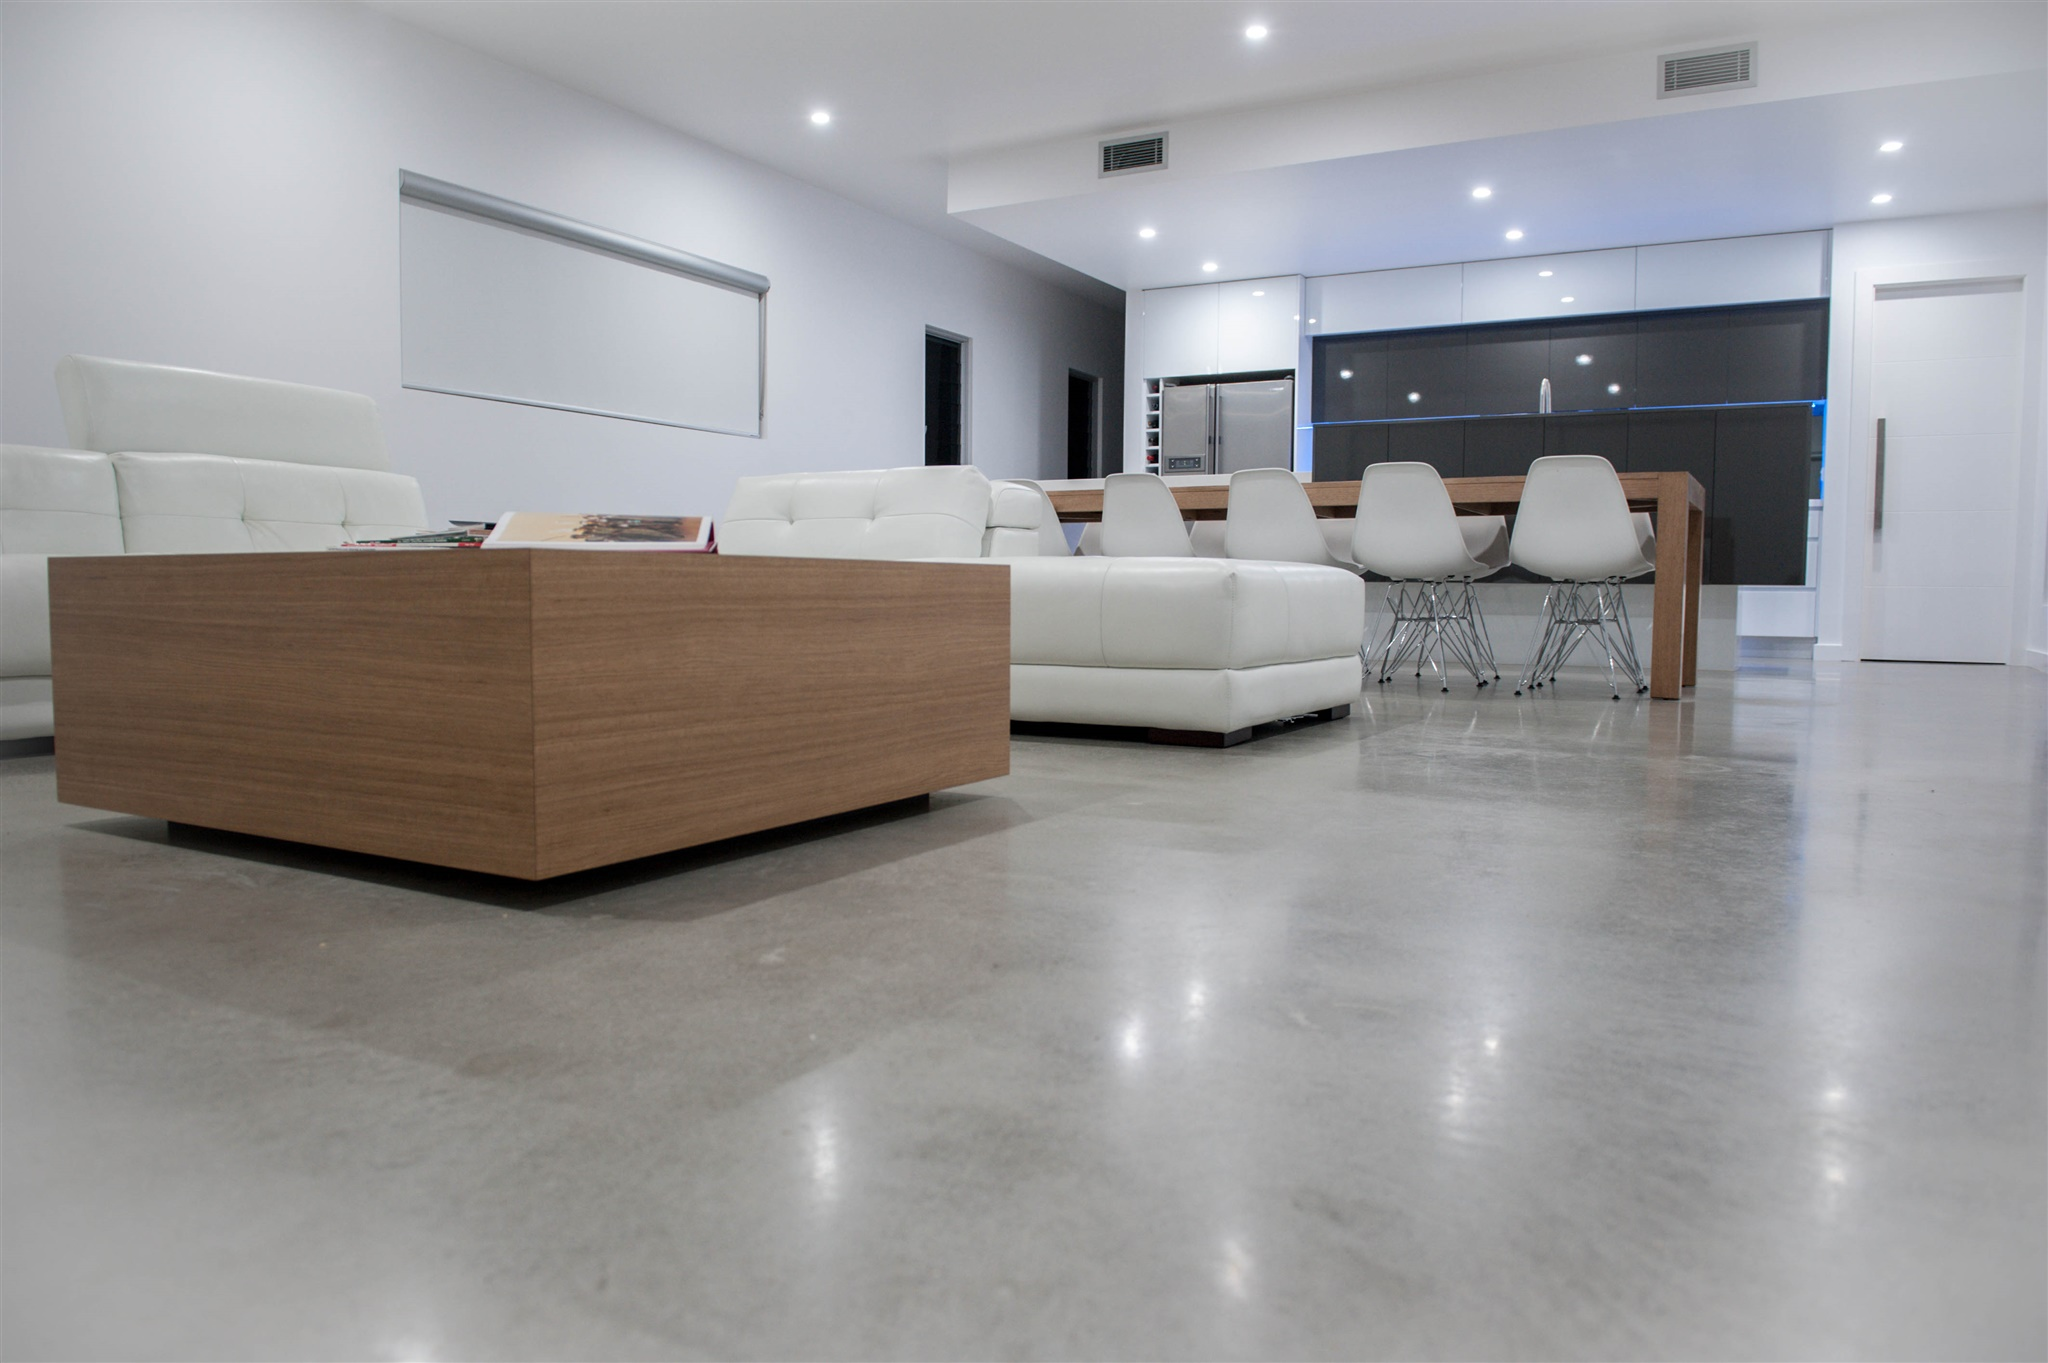 The Benefits of Polished Concrete Floors